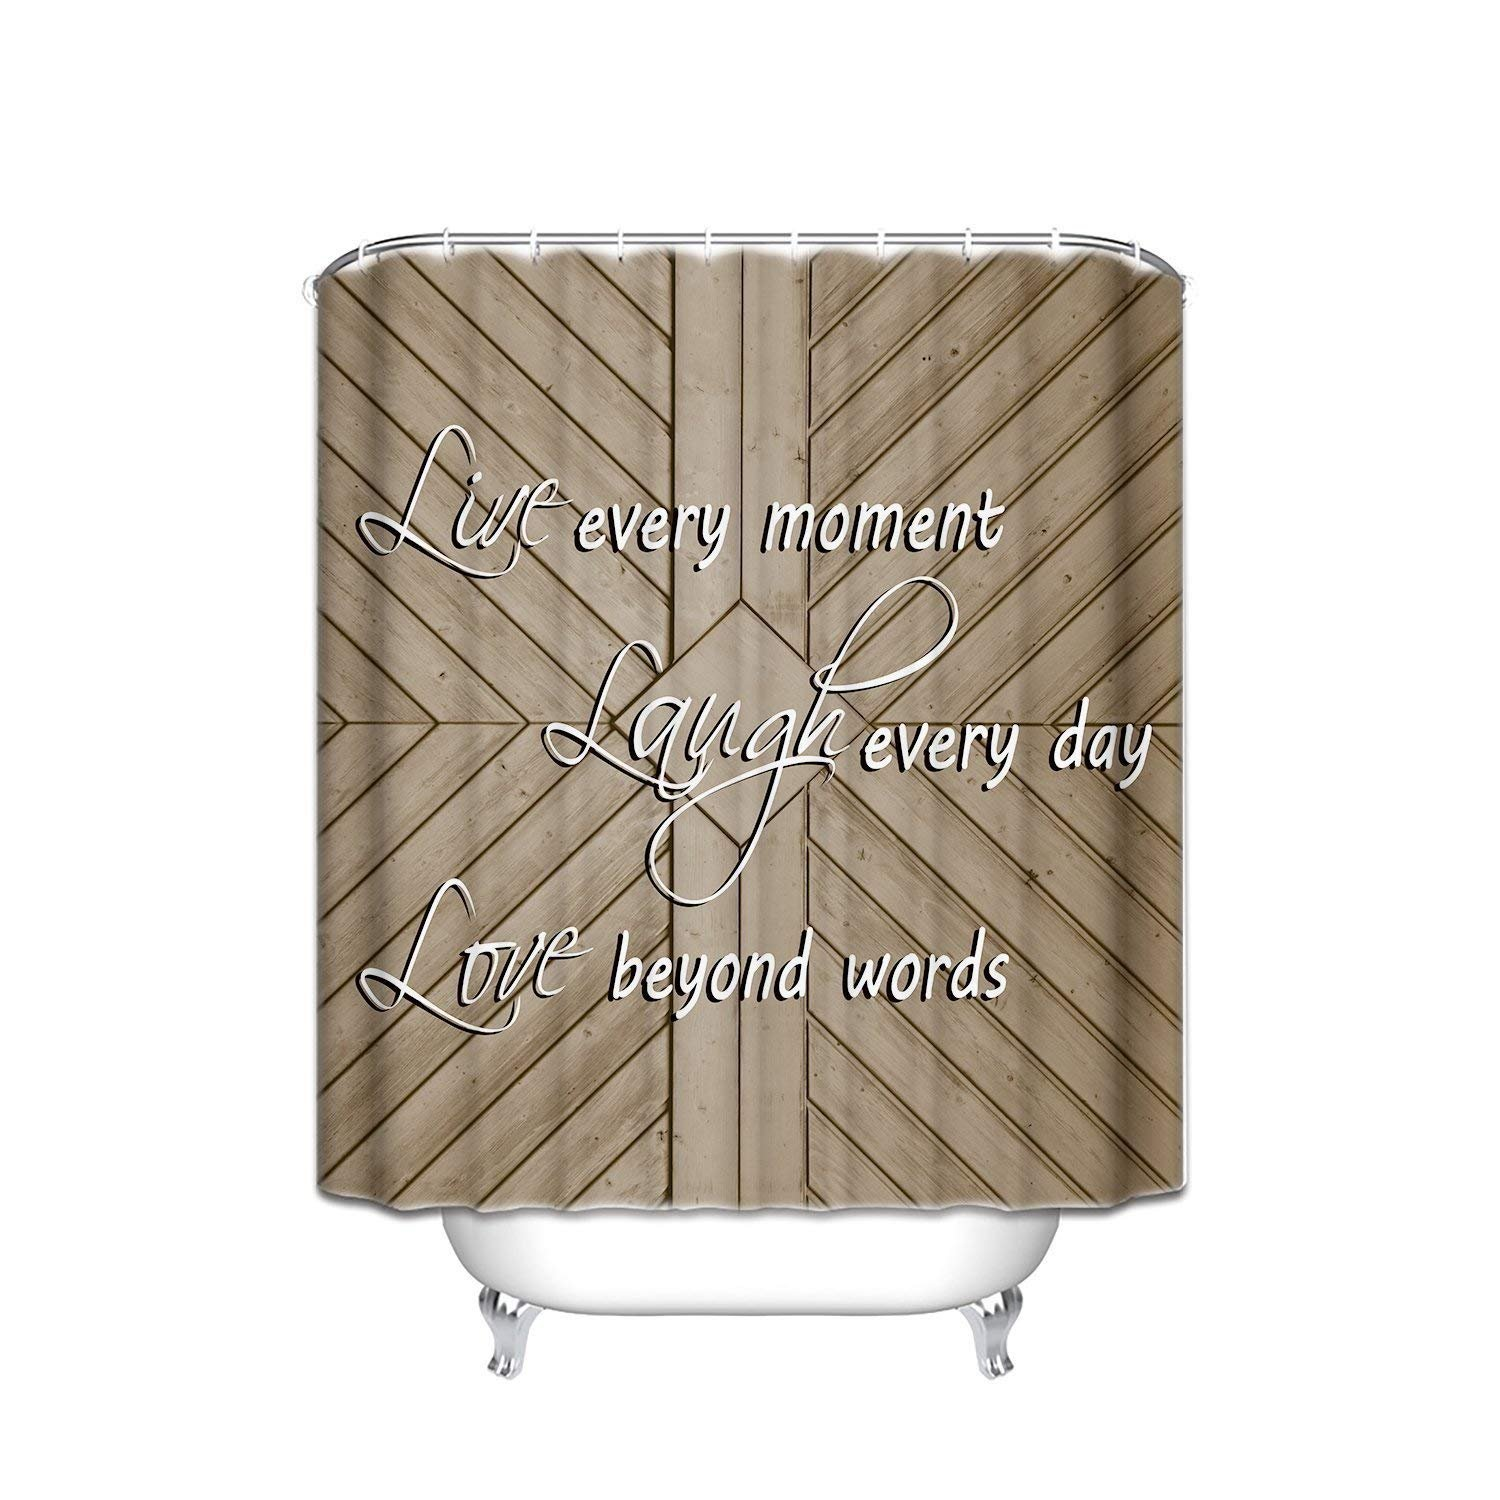 Prime Leader Fabric Shower Curtain Quotes Laugh Every Day Old Barn Wood Background Mildew Resistant Polyester Bathroom Curtains Set with Hooks,Personality Home Decor,36''(w) x 78''(h)